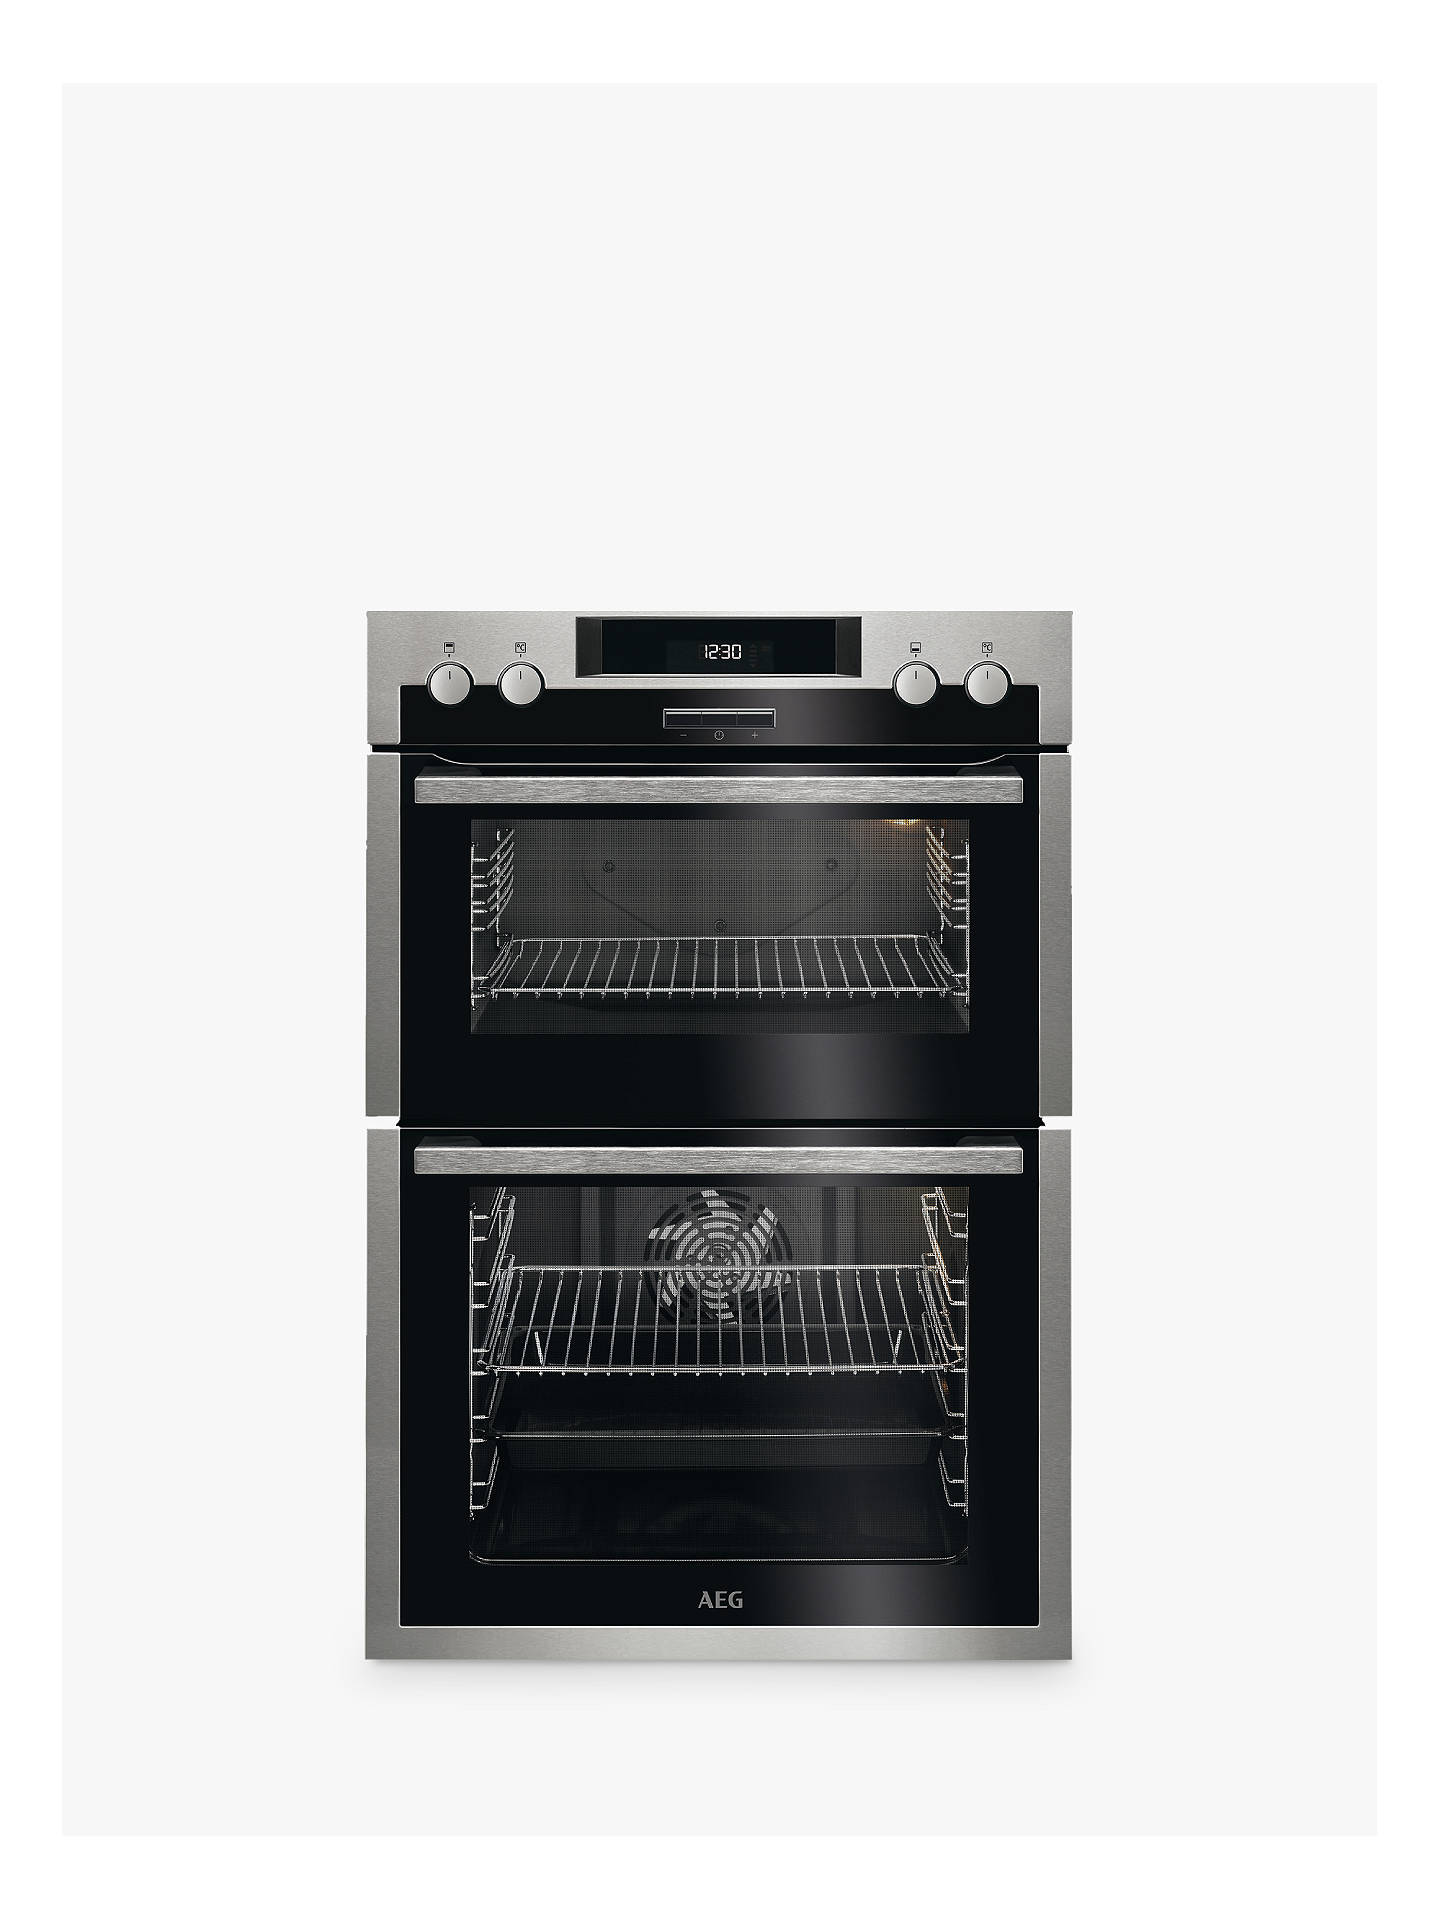 BuyAEG DCS431110M Built-In Multifunction Double Electric Oven, Stainless Steel Online at johnlewis.com